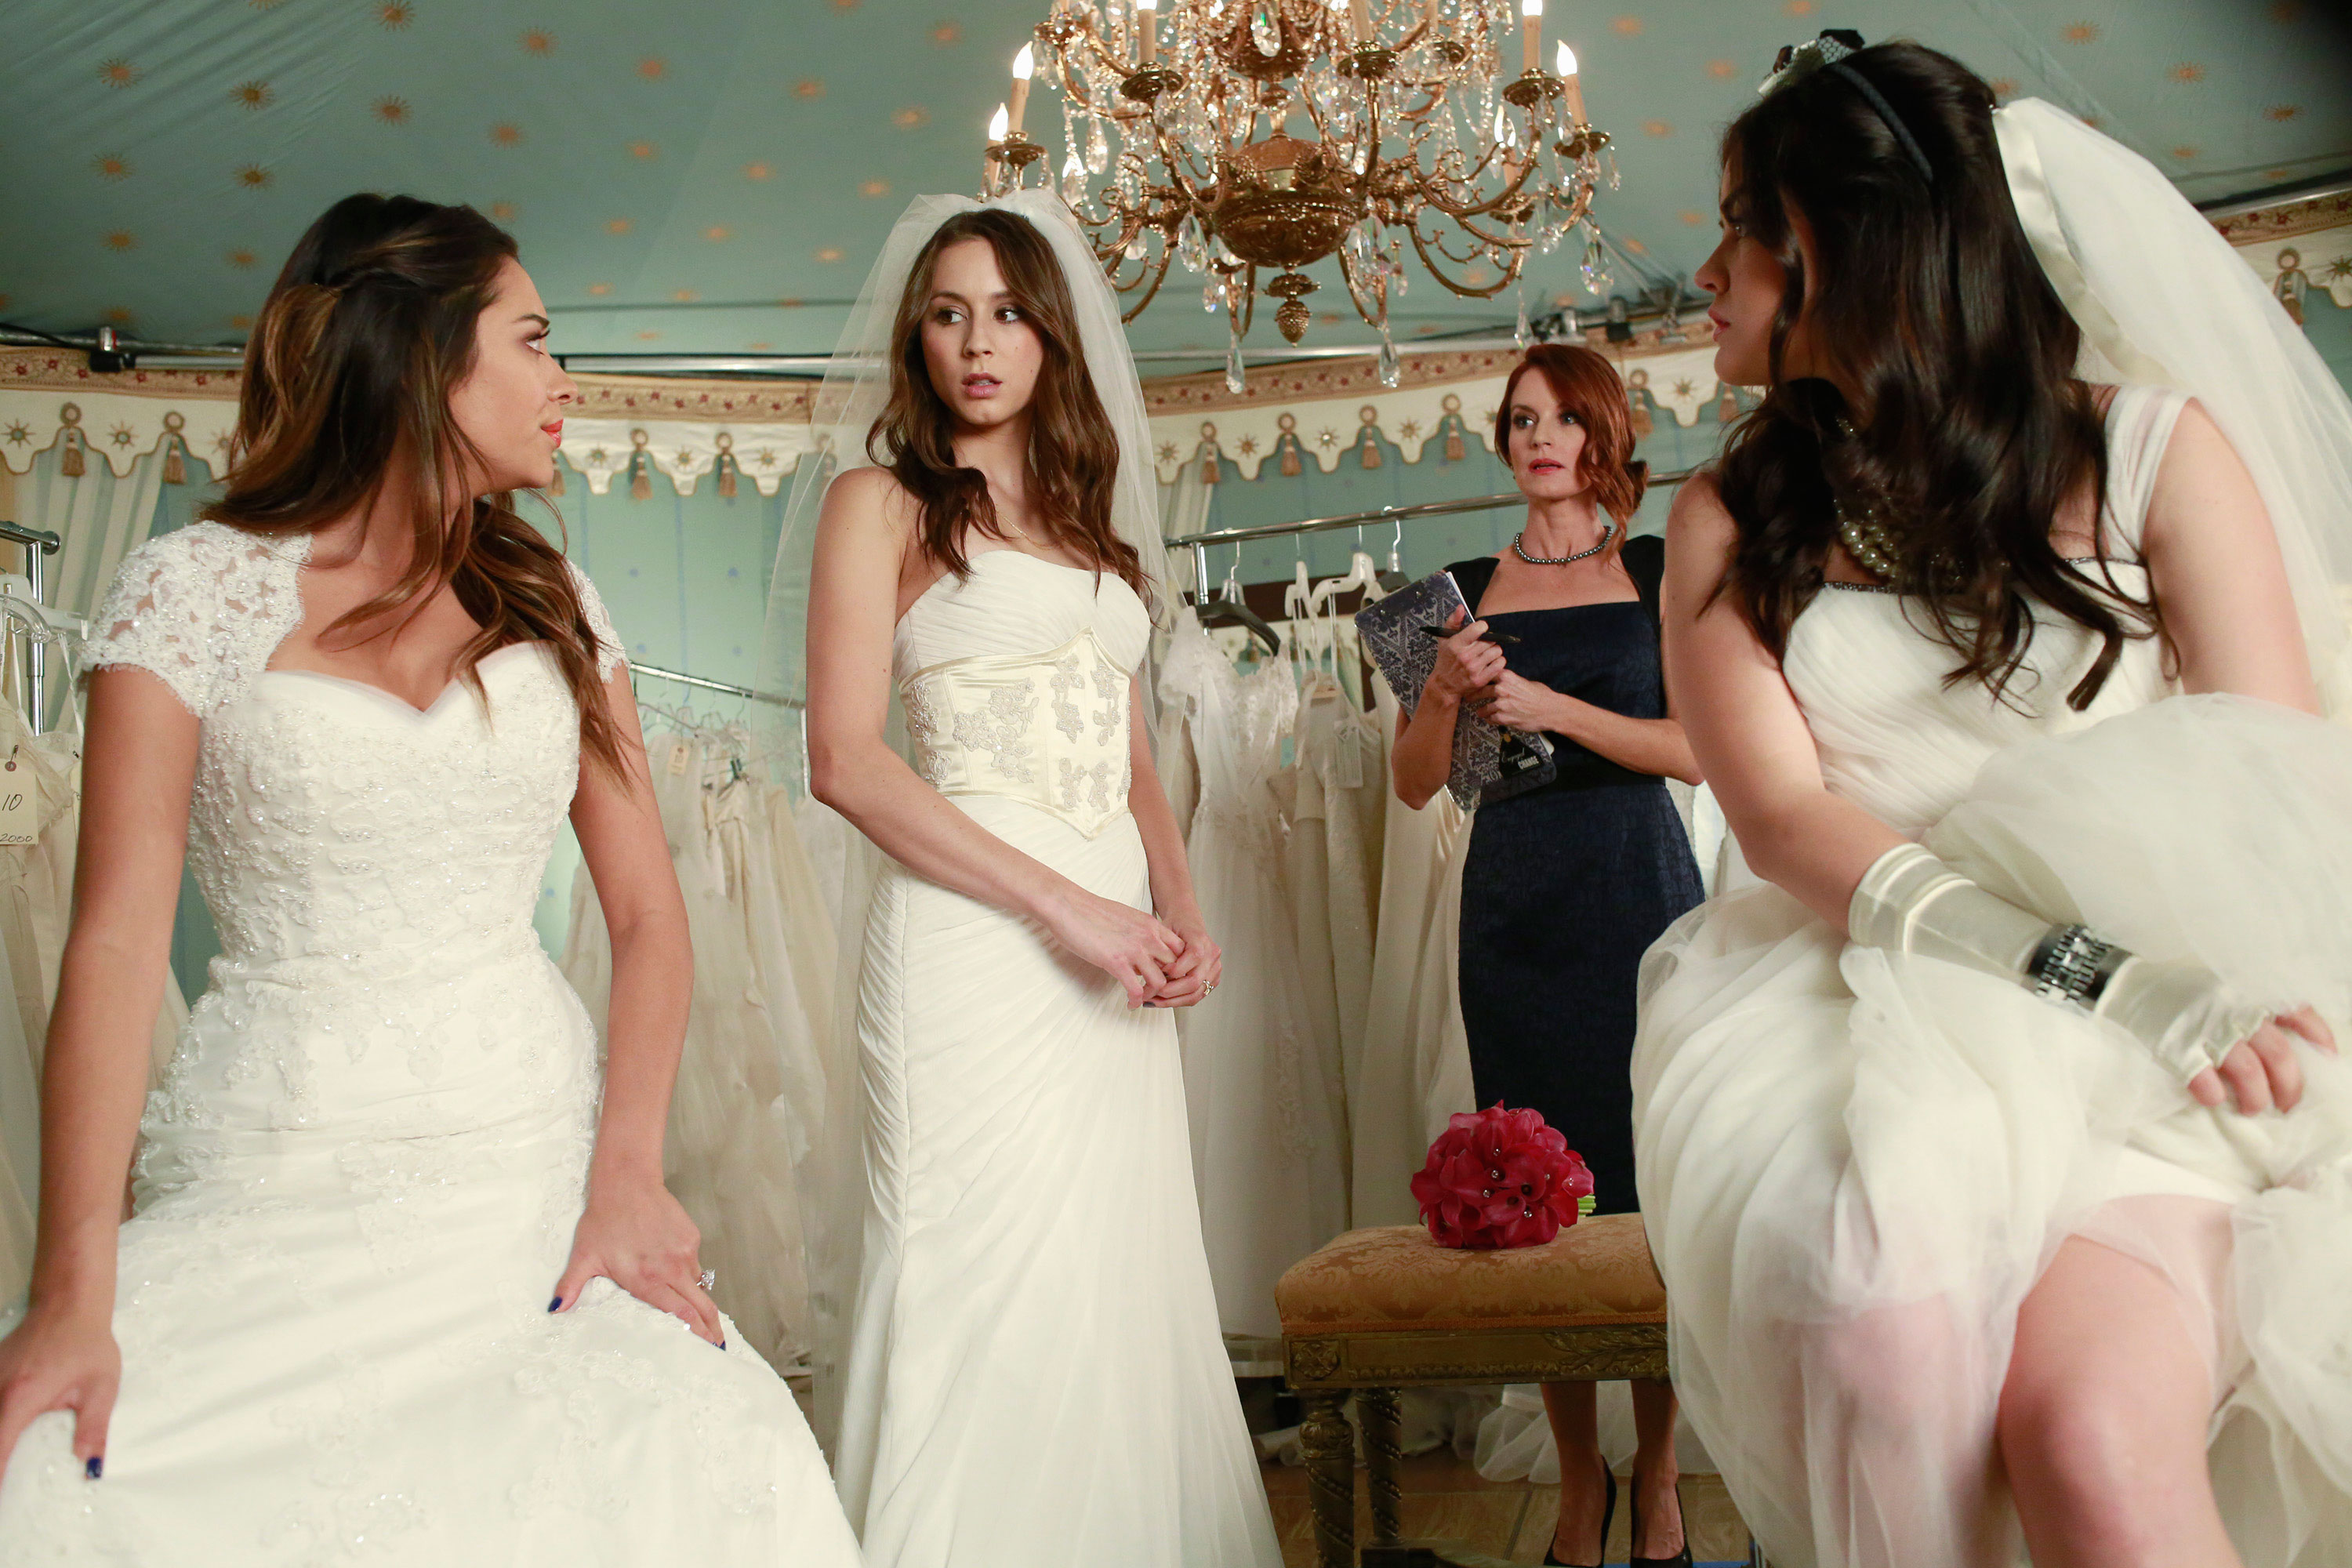 Tv fashion recap: new girl